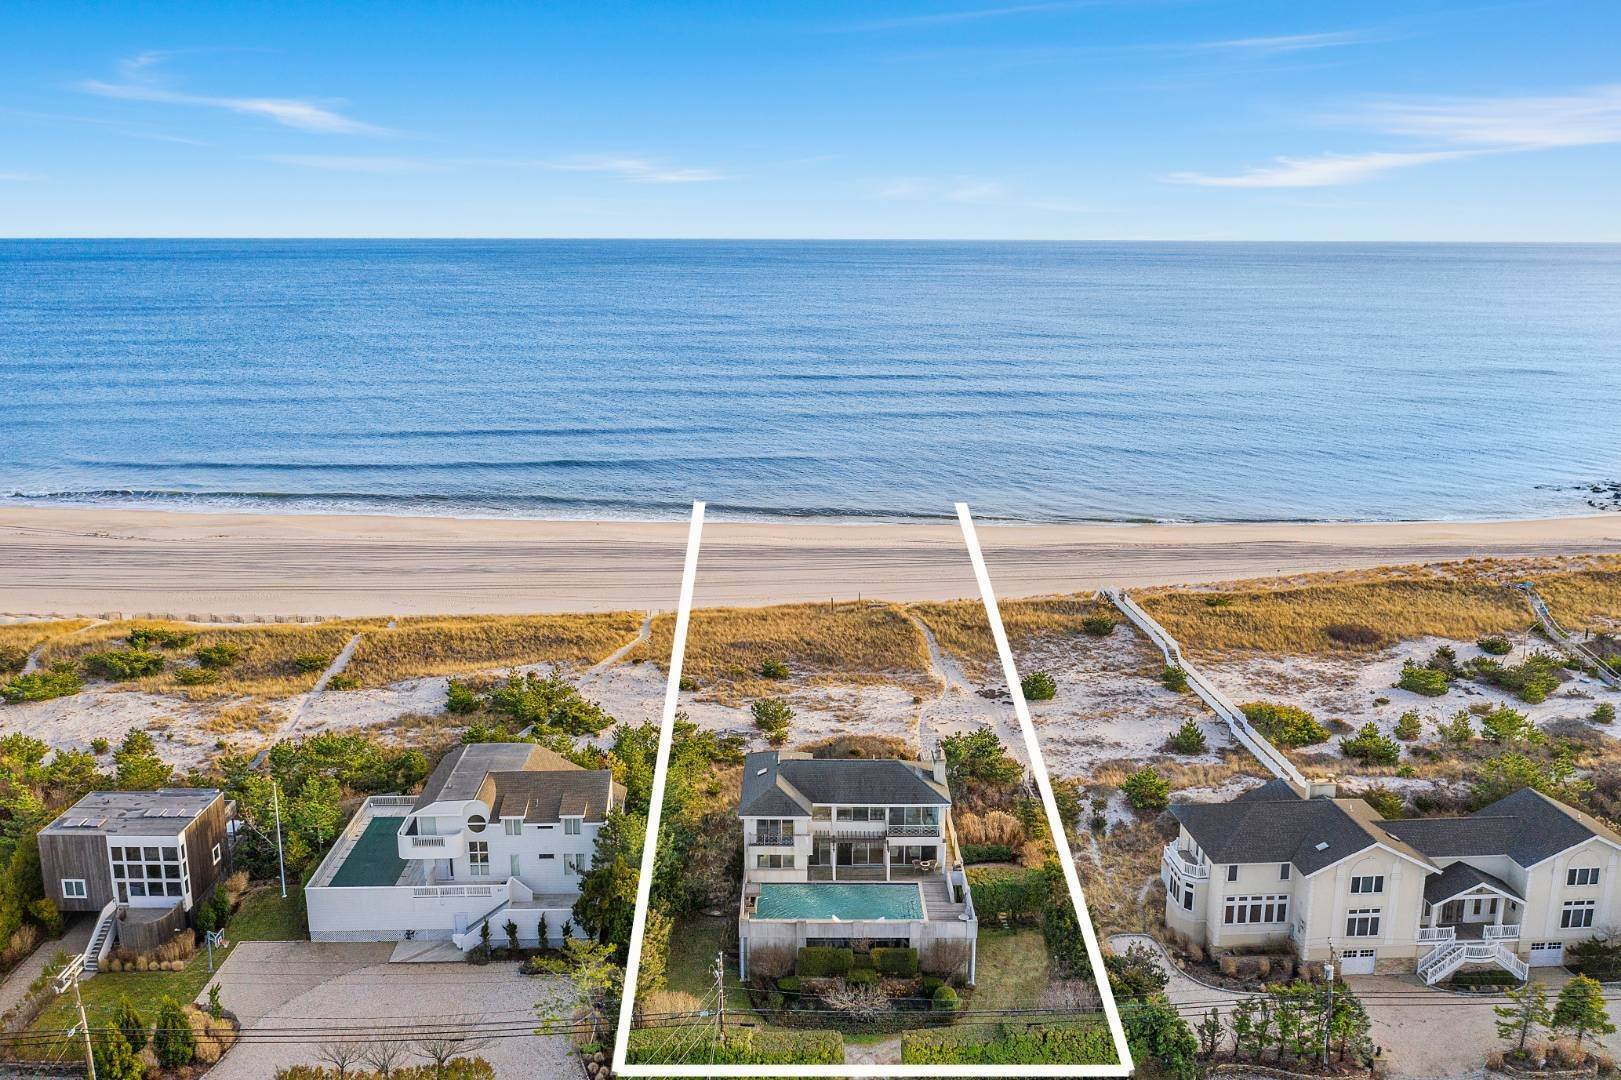 Single Family Home for Sale at Westhampton Oceanfront With Pool & Dock 599 Dune Rd, Westhampton, NY 11978